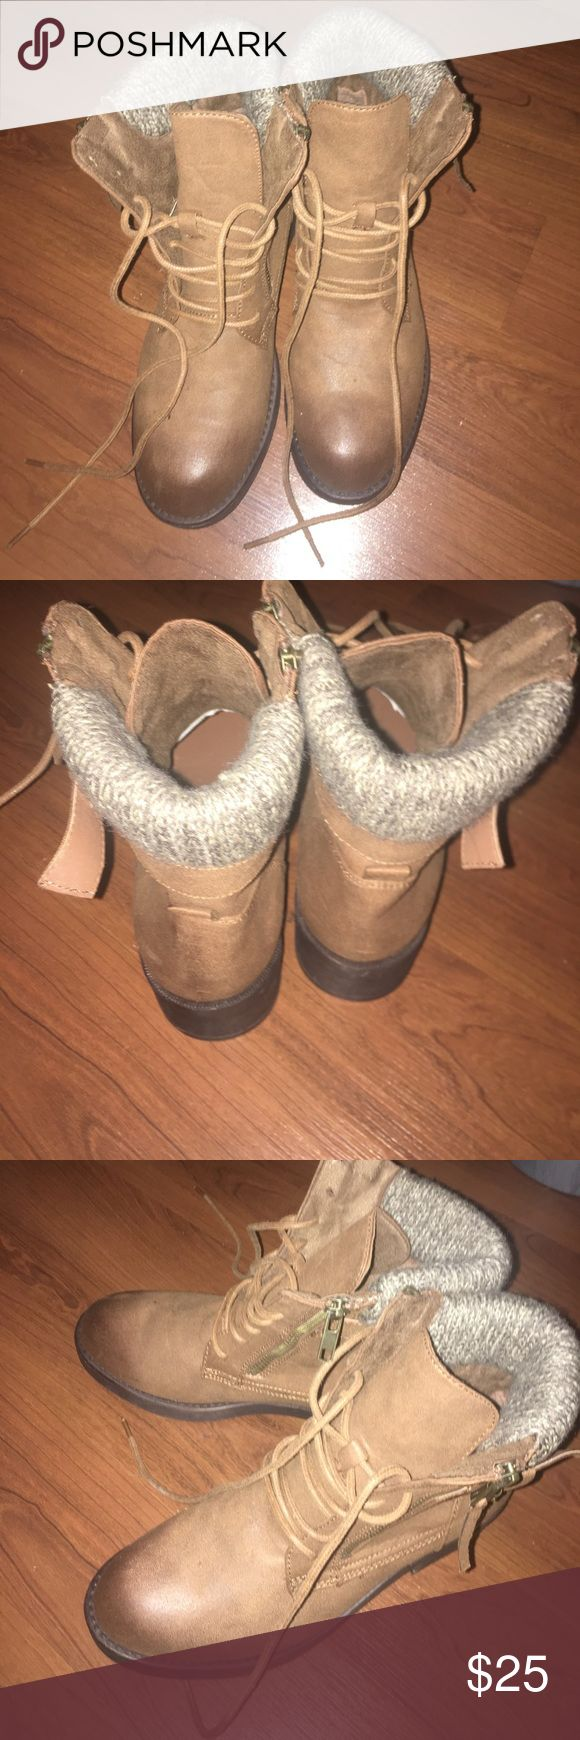 brown ankle boots from Charlotte Russe size 7 (NEVER WORN!!!!) Charlotte Russe Shoes Ankle Boots & Booties